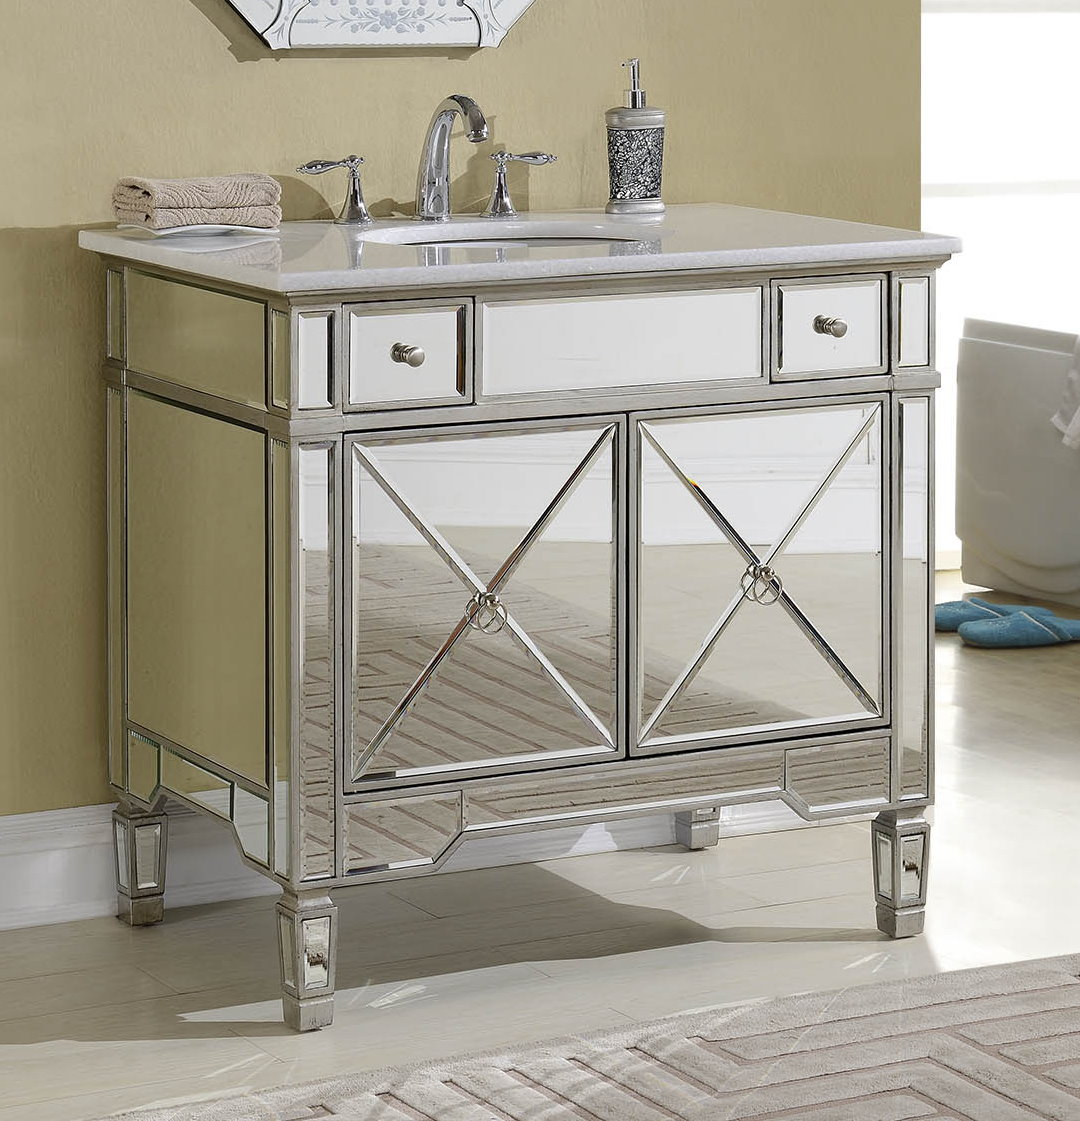 Adelina 36 Inch Mirrored Silver Bathroom Vanity White Marble Top